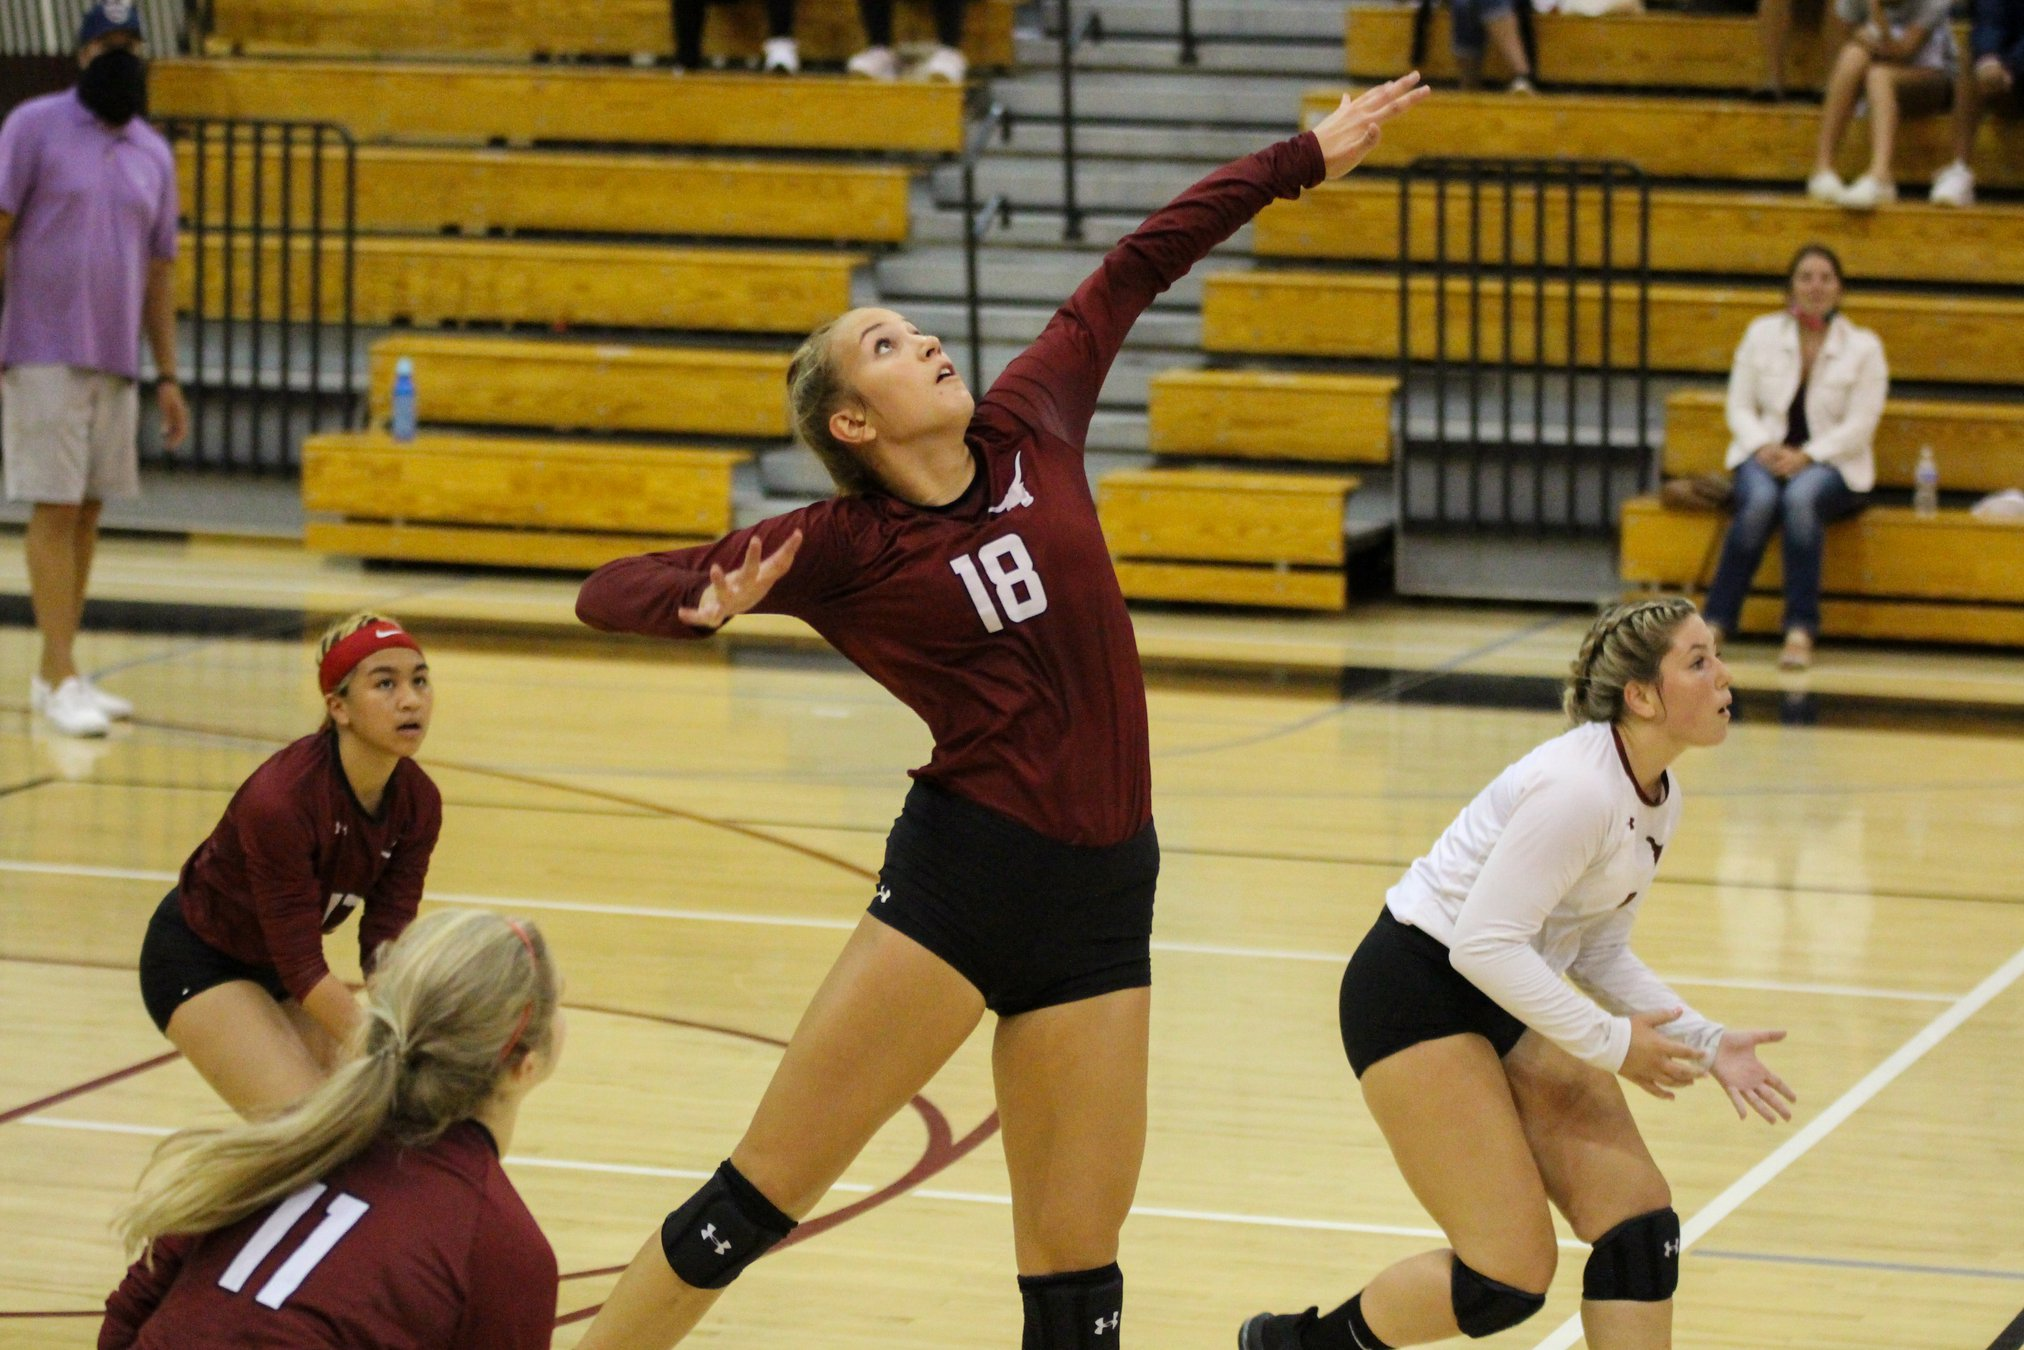 Louisvilles Kayla Cole named Stark County Volleyball